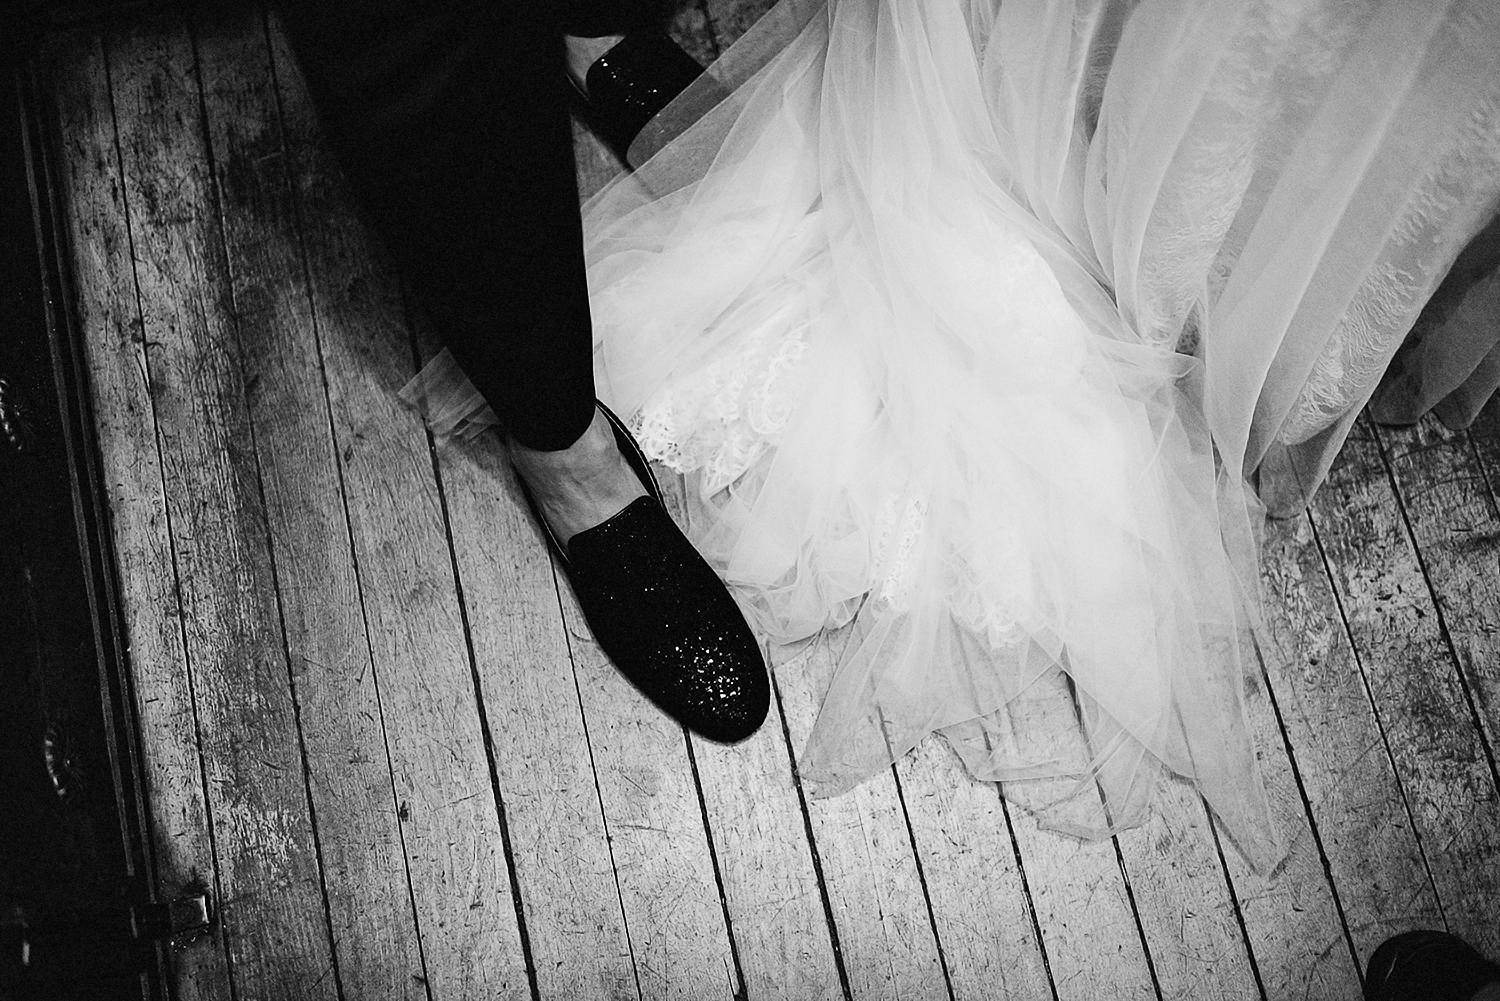 Best-Wedding-Photographers-Toronto_-Urban-City-Wedding-Photography-Downtown-Toronto-Photographer_Vintage-Bride-and-Groom-Details_The-Chase-Wedding-Venue_Candid-Photojournalistic-Documentary-Epic-First-Look-Bride-Portrait.jpg